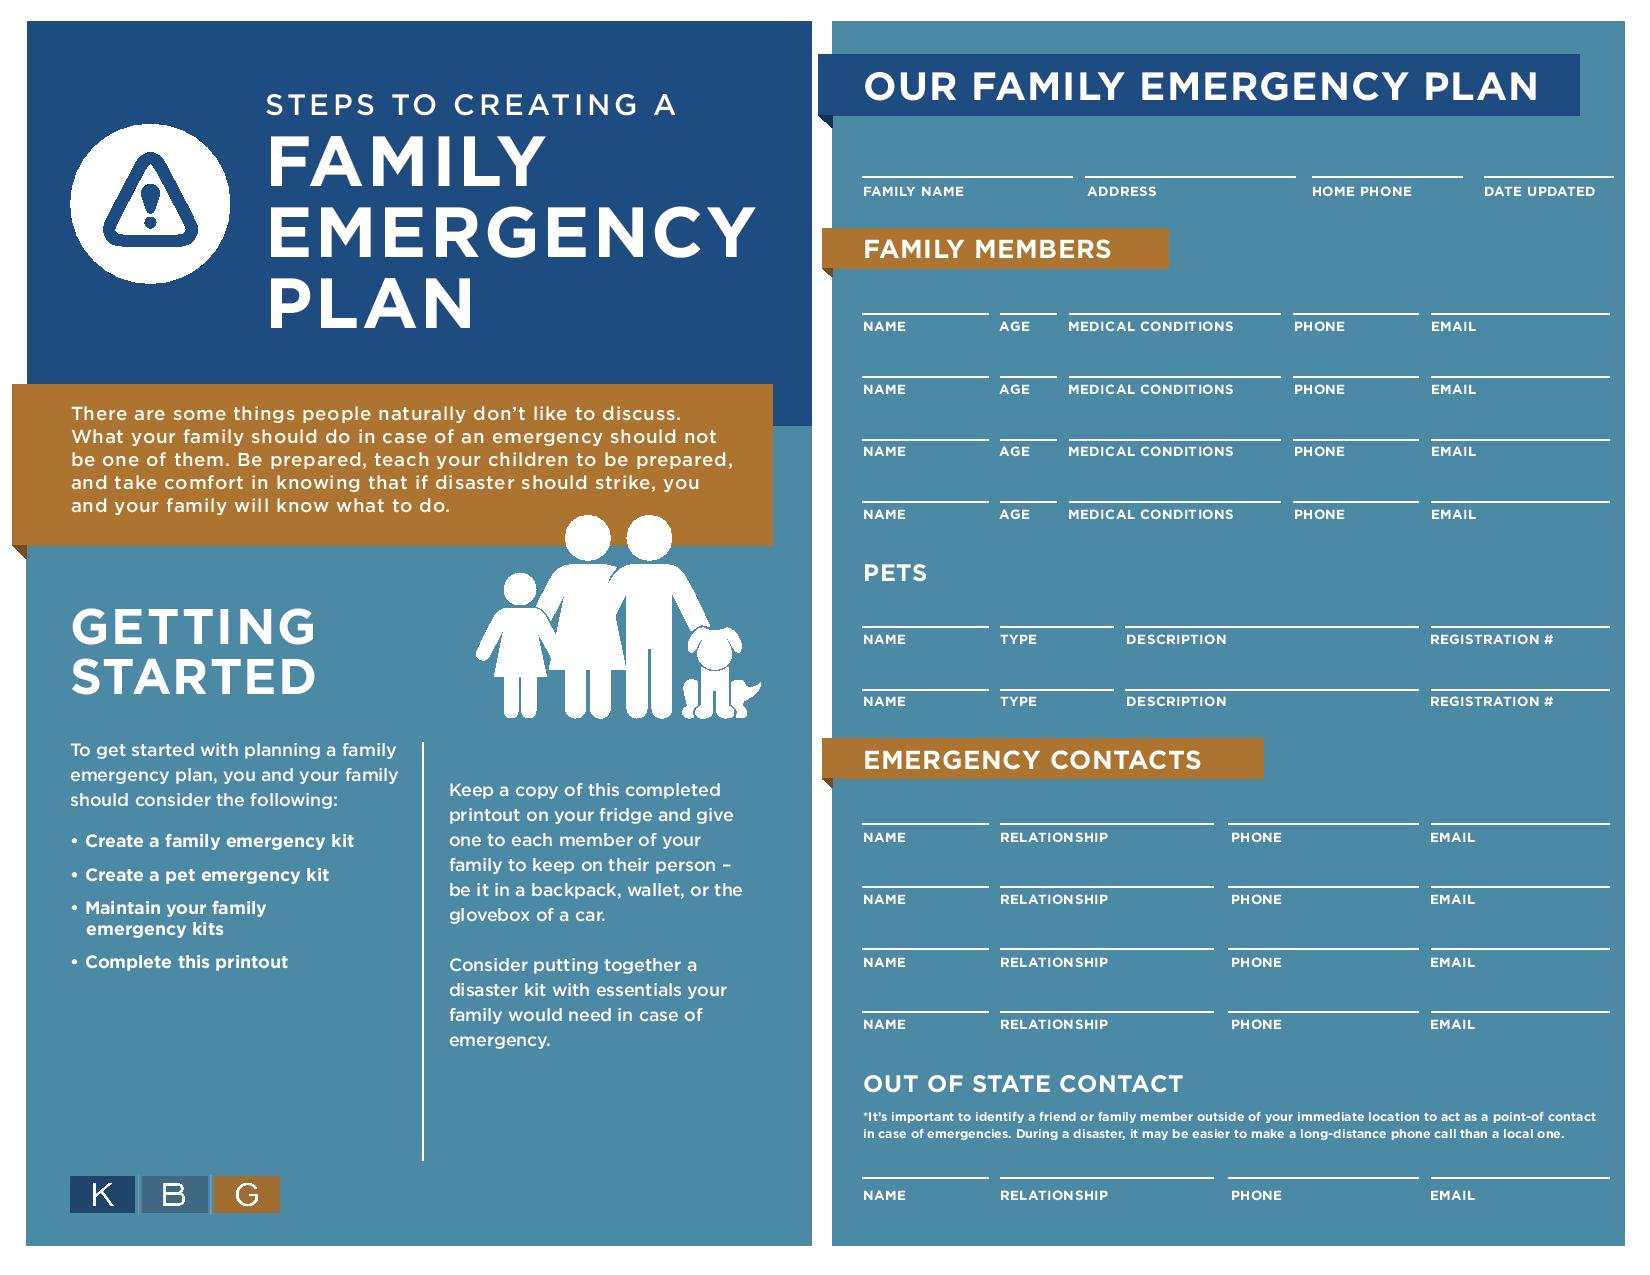 steps to creating a family emergency plan kbg injury law